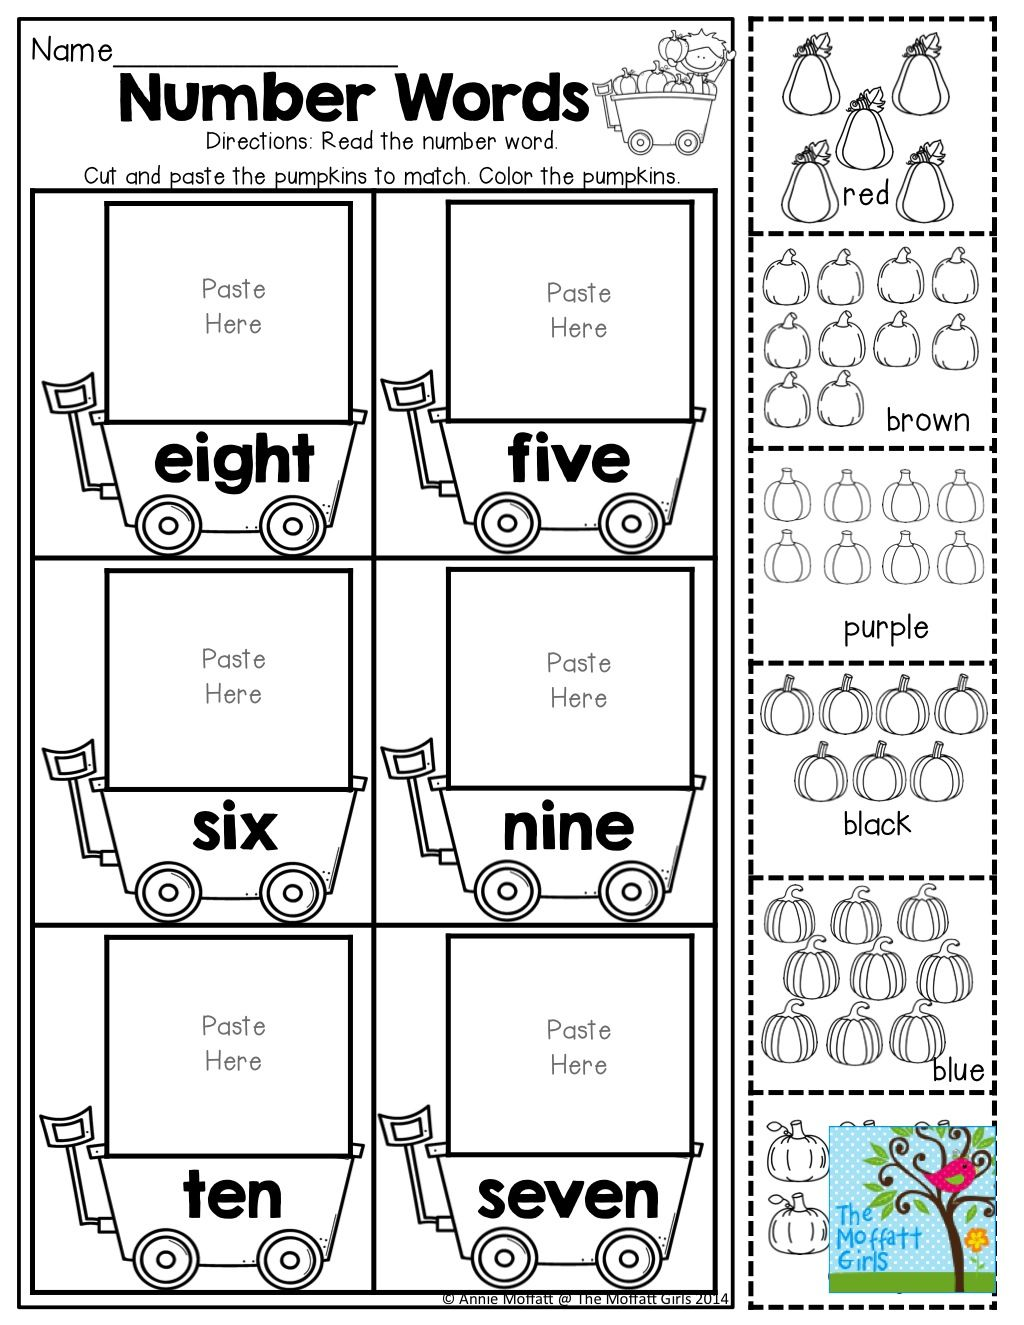 Number Words Count Cut And Paste Tons Of Fun Printables